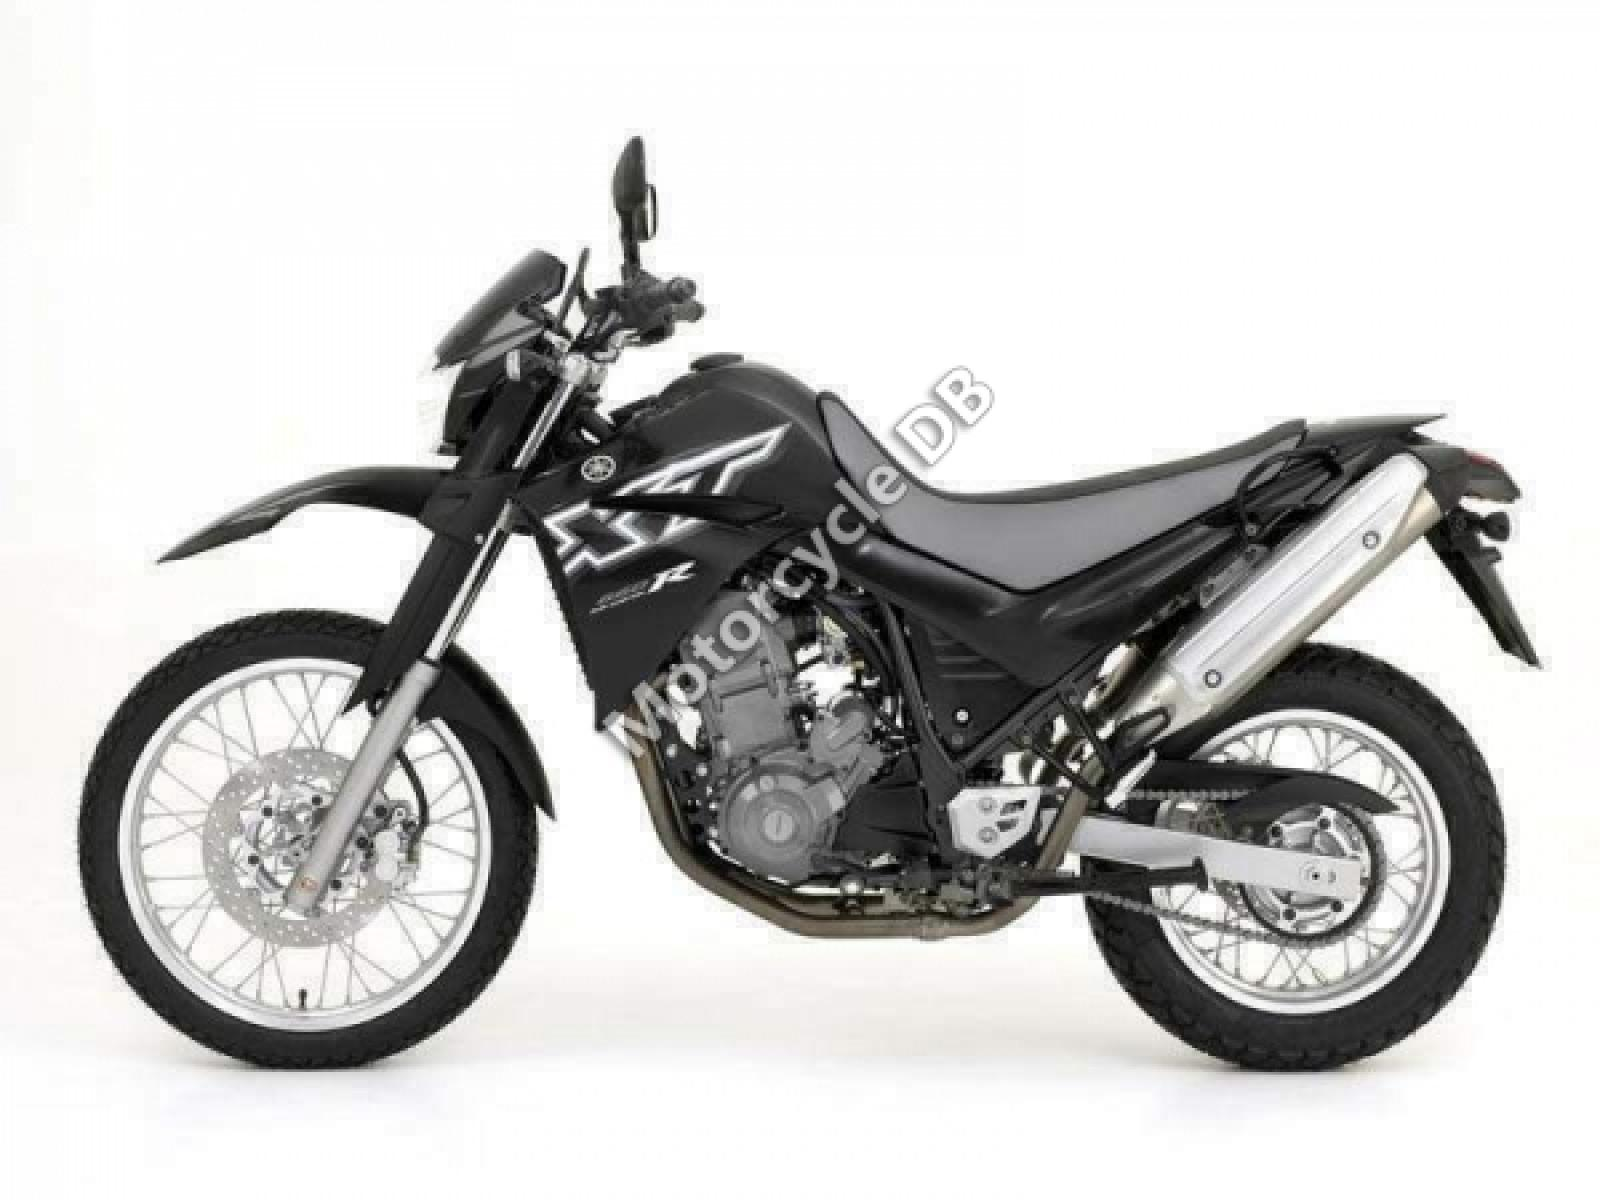 Highland 950 V2 Outback Supermoto 2005 images #97055